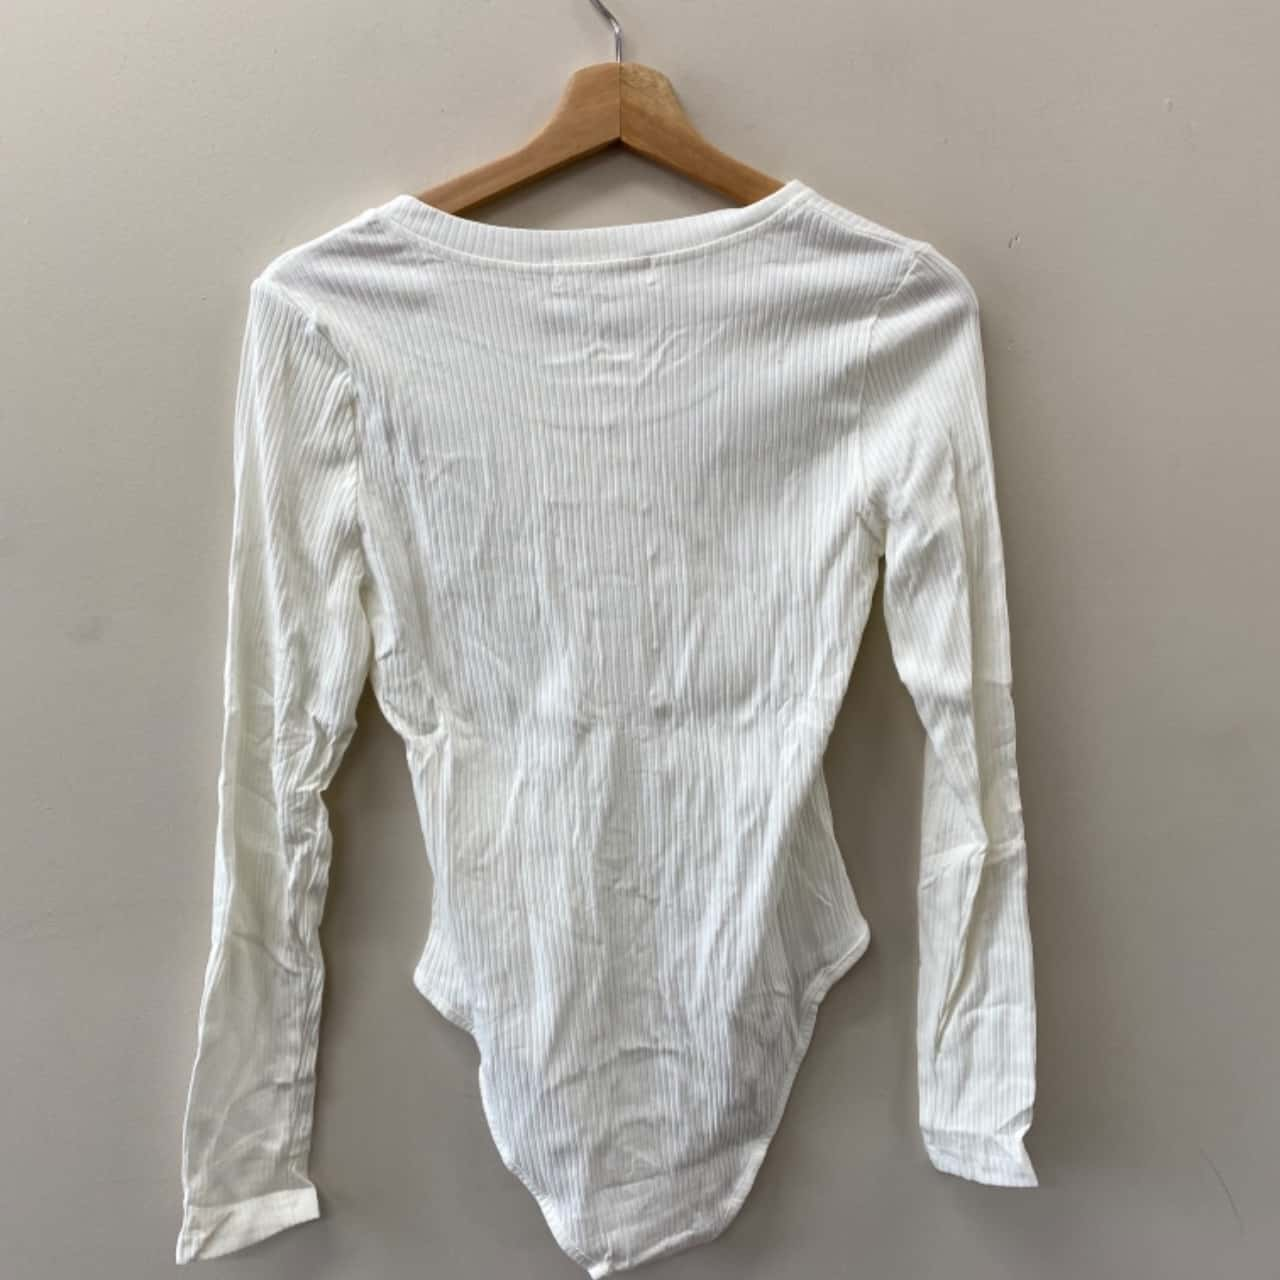 Reverse M Women's Cream 2pc Set - New With Tags